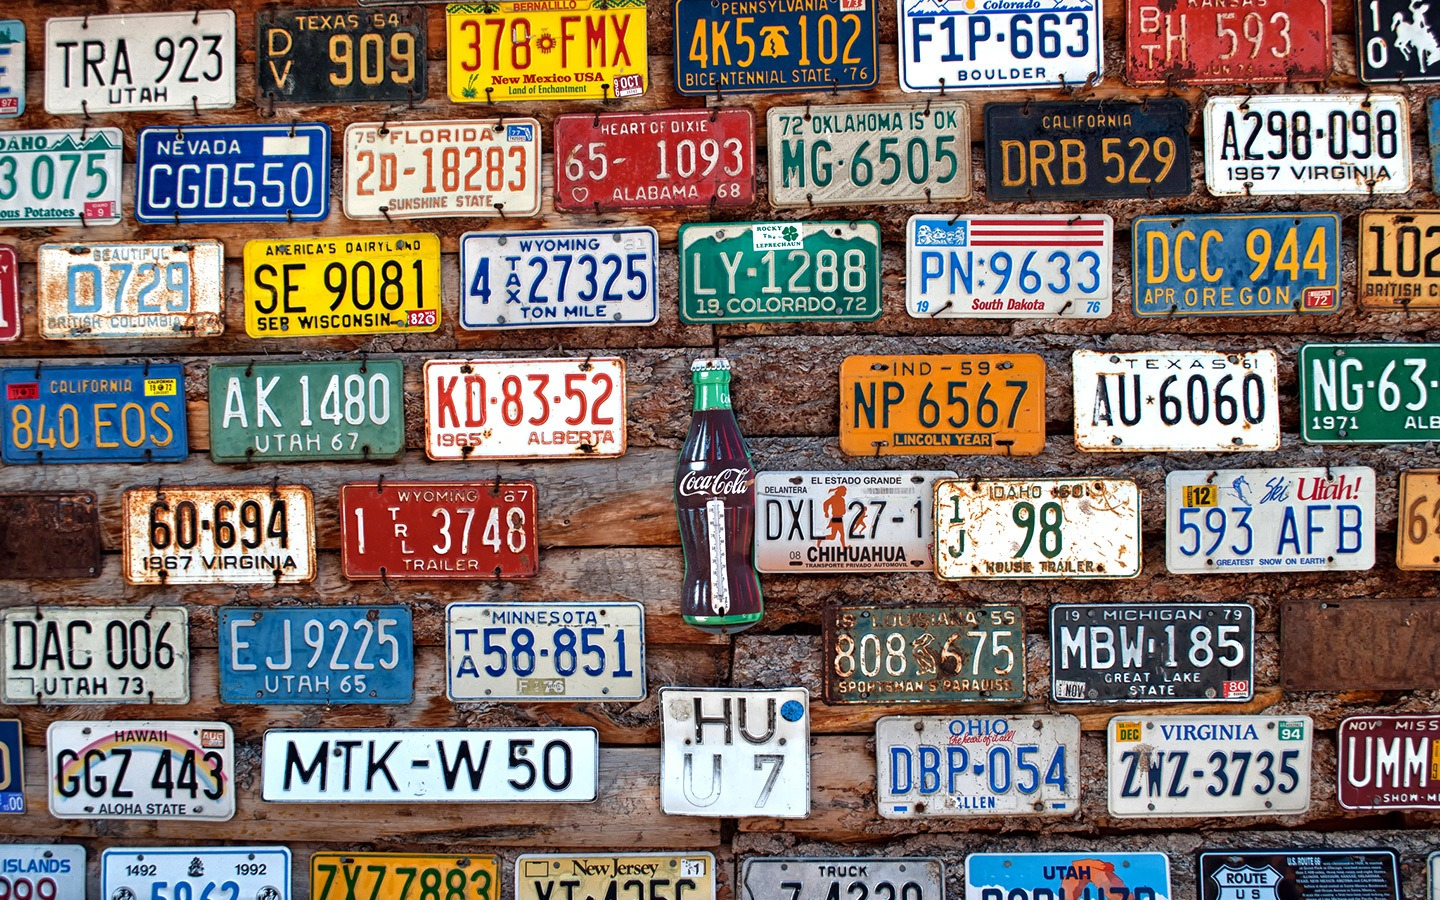 A wall of number plates on Route 66 in the southwest USA